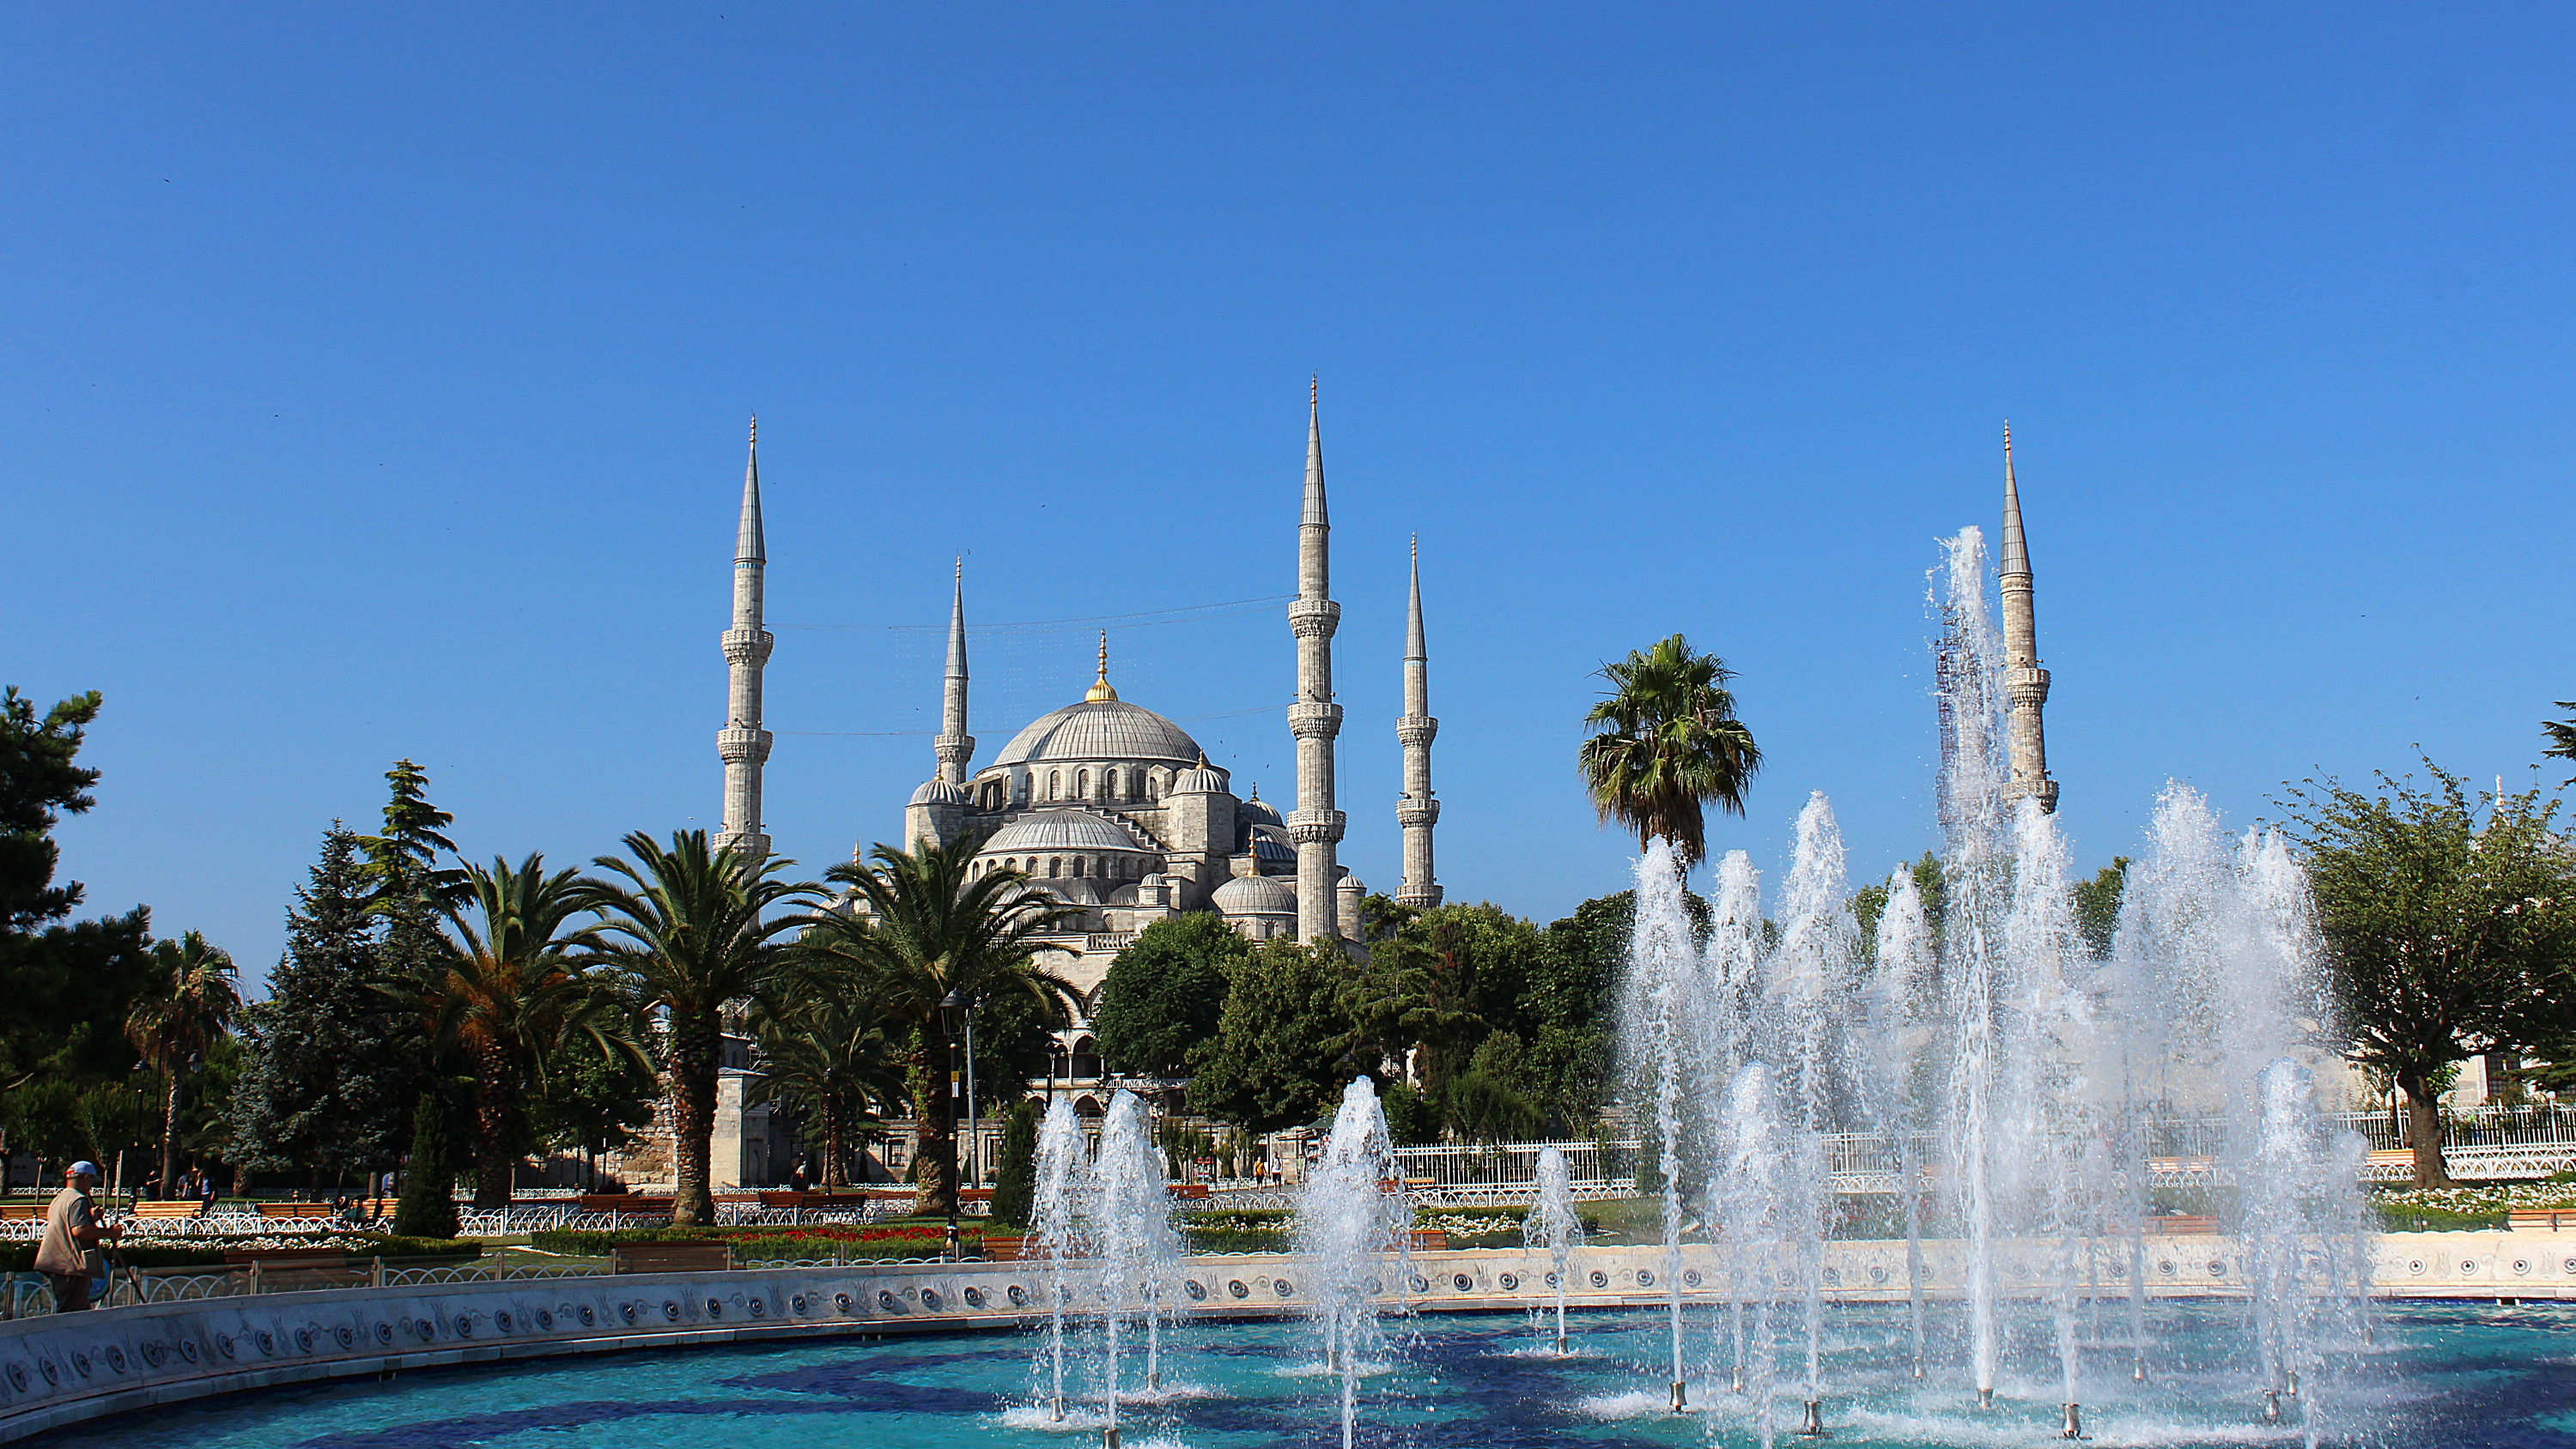 Blue Mosque of Istanbul and a fountain in front.